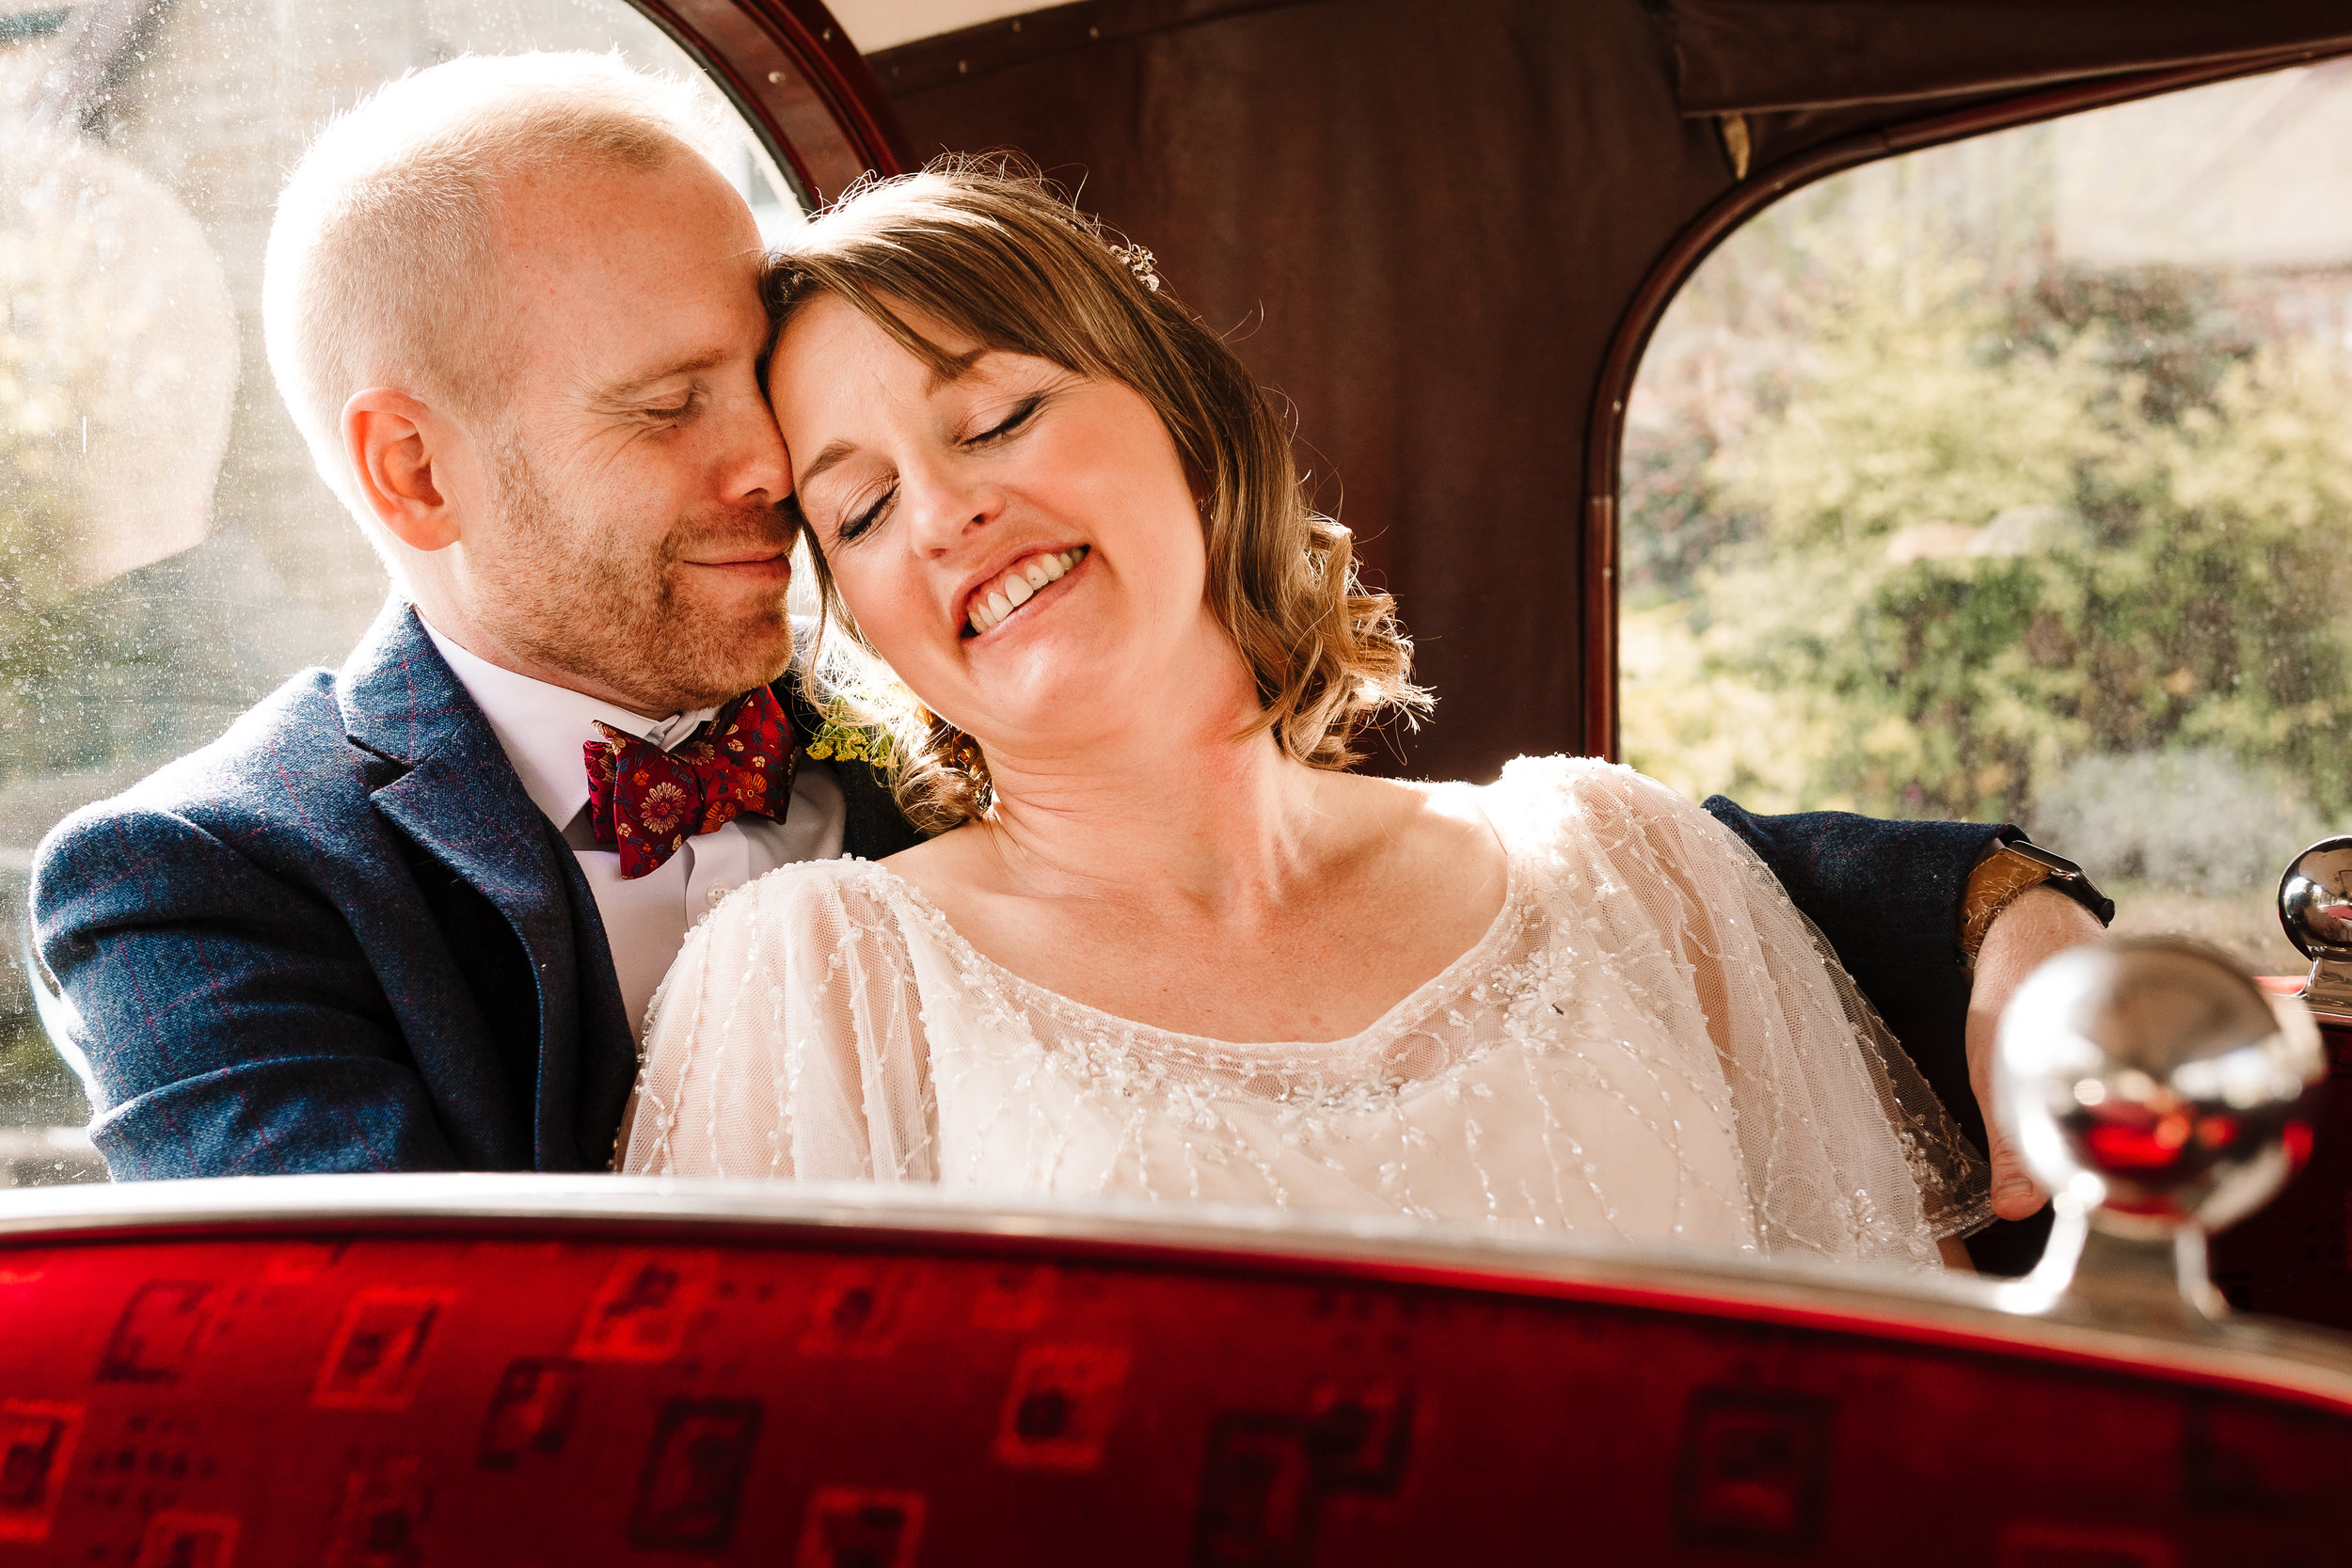 A bride and groom smiling and snuggling in a vintage bus